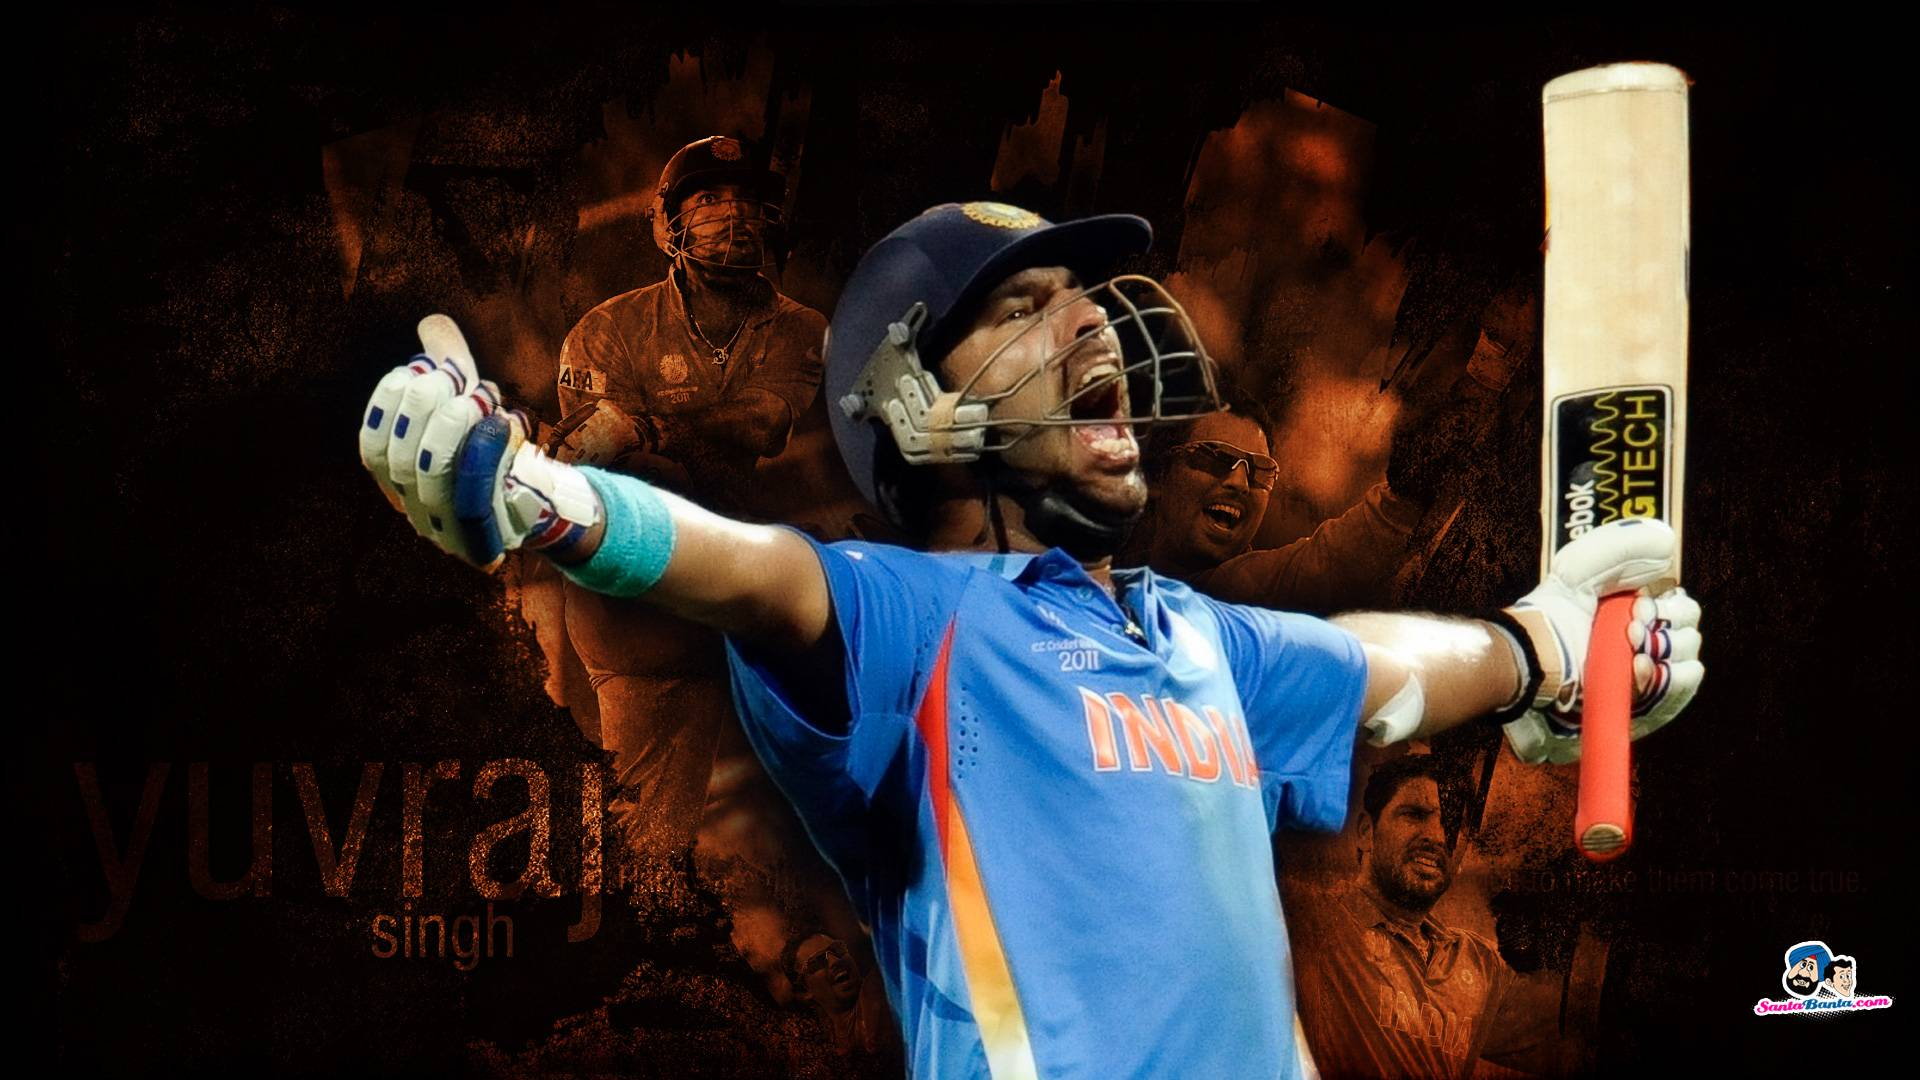 Cricketers Wallpapers Wallpaper Cave